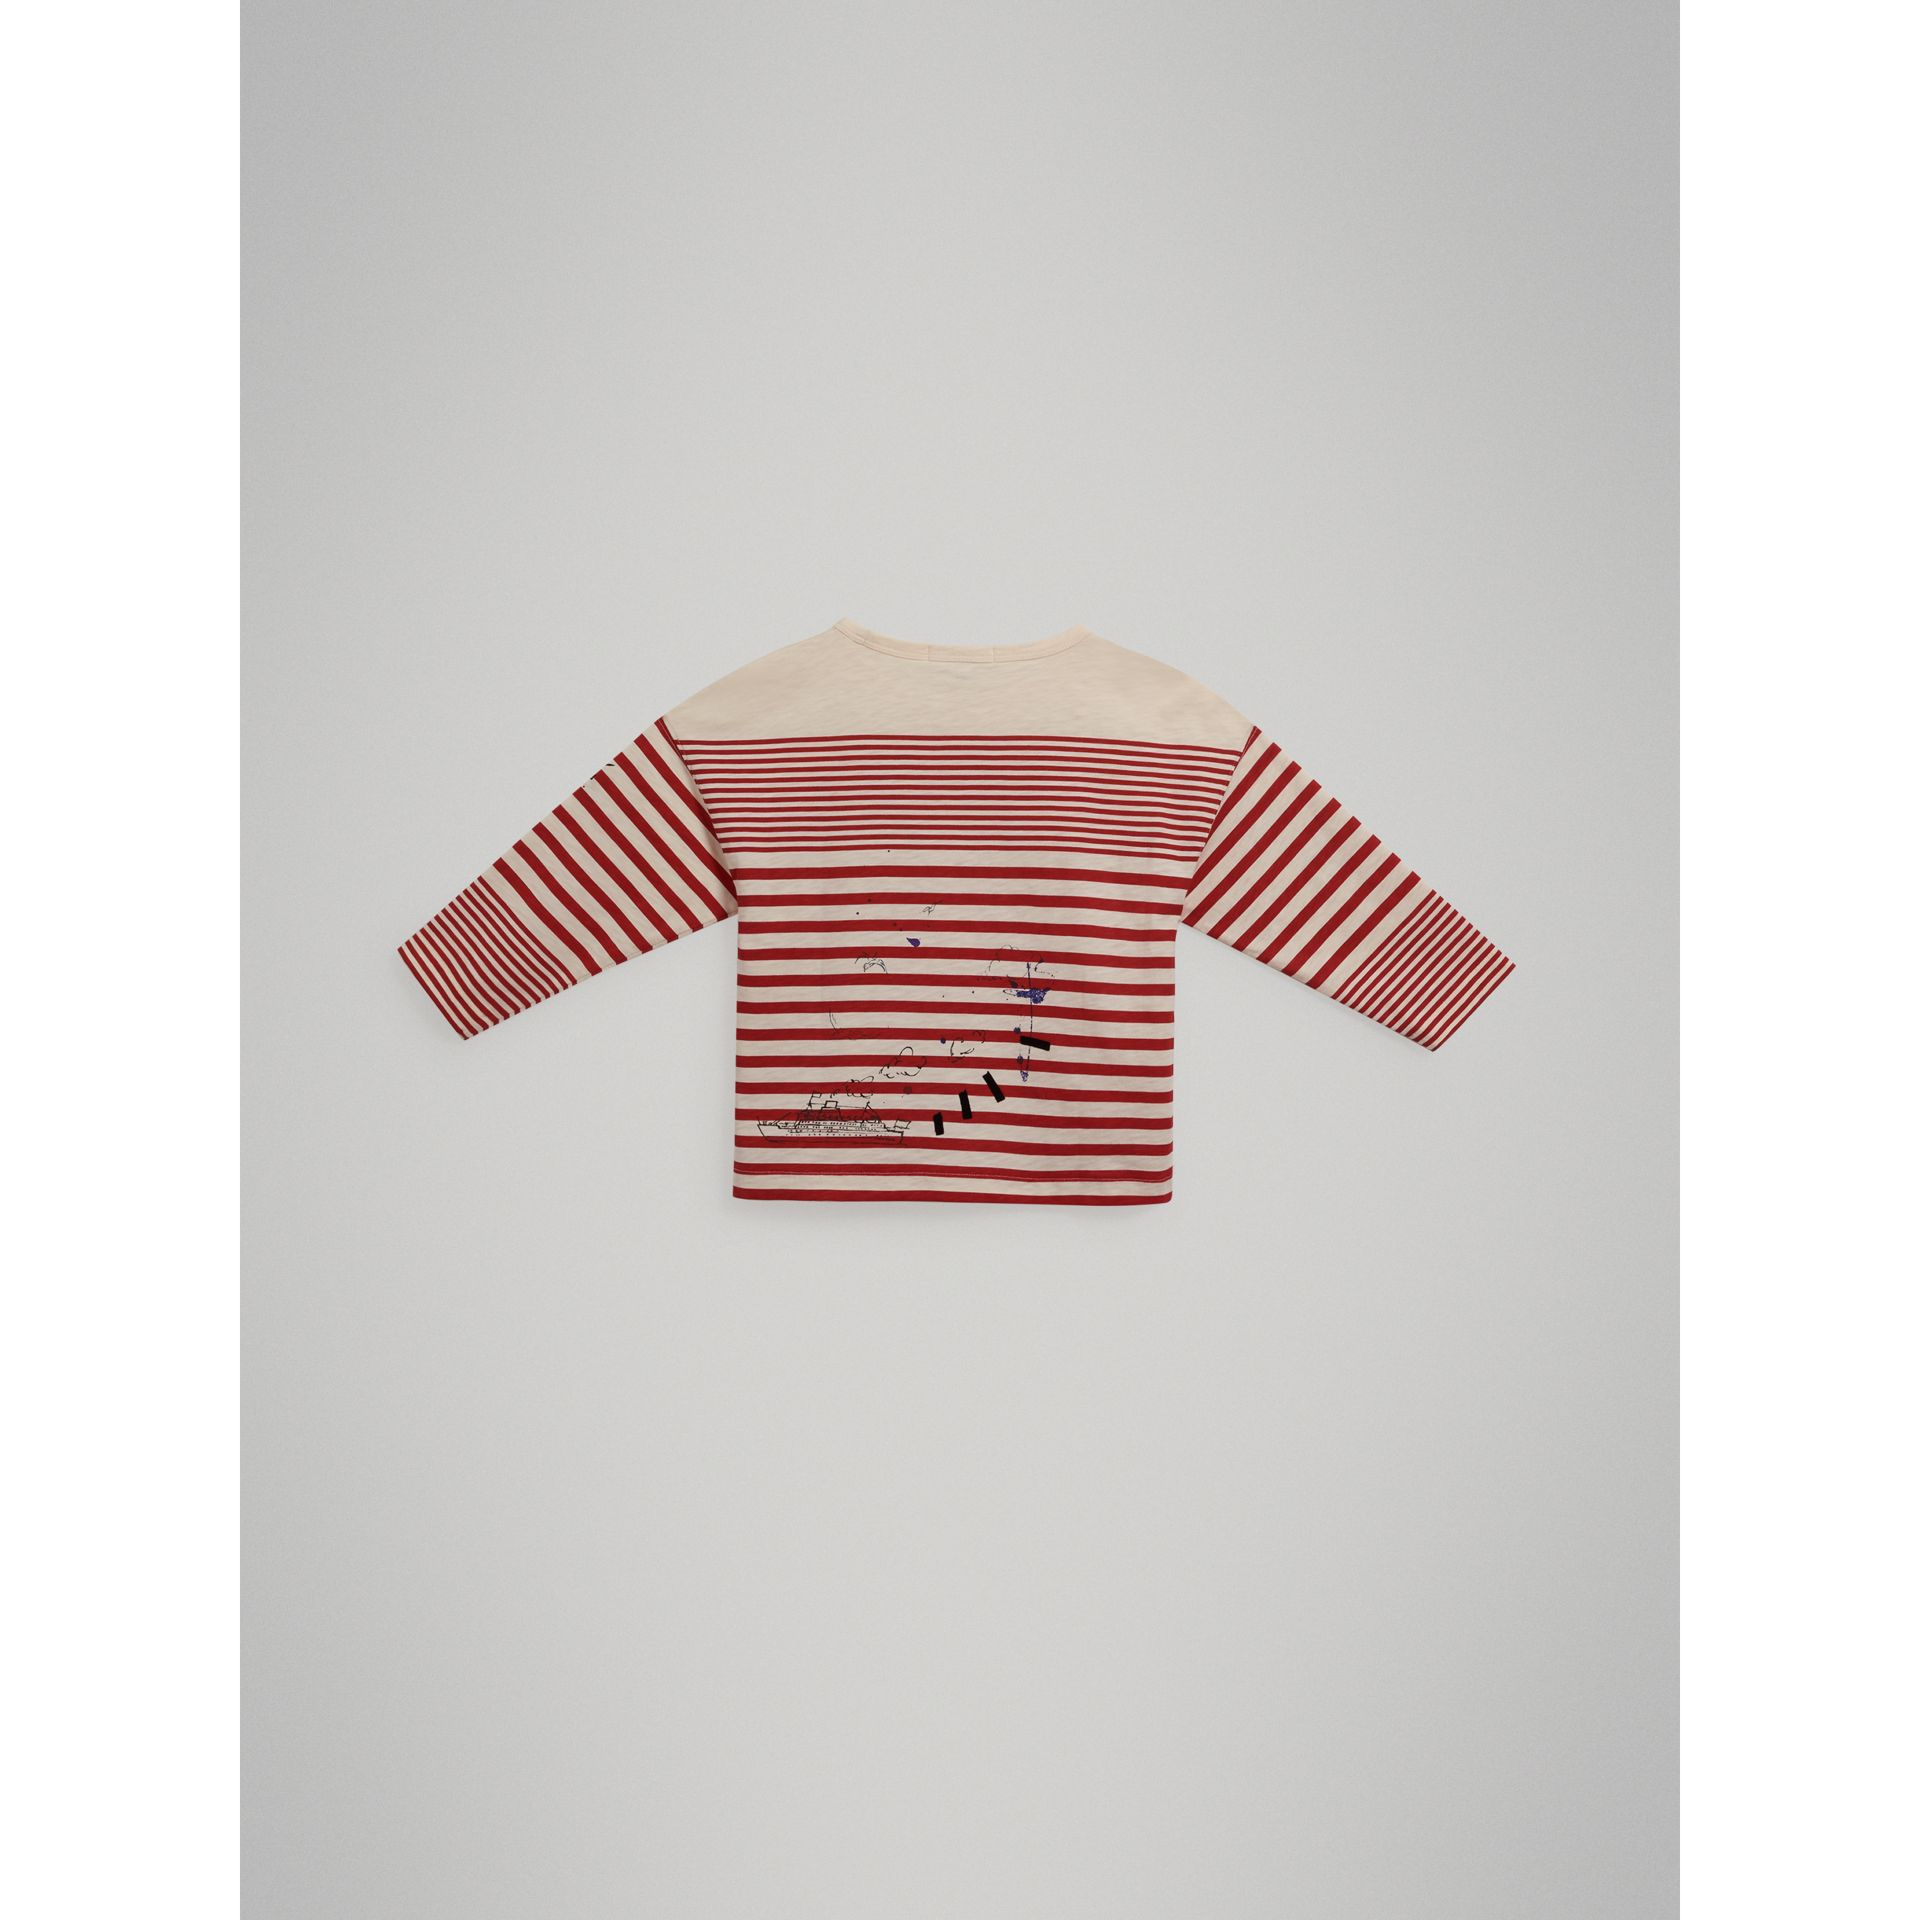 SW1 Print Striped Cotton Top in Bright Red/natural White - Boy | Burberry United Kingdom - gallery image 3